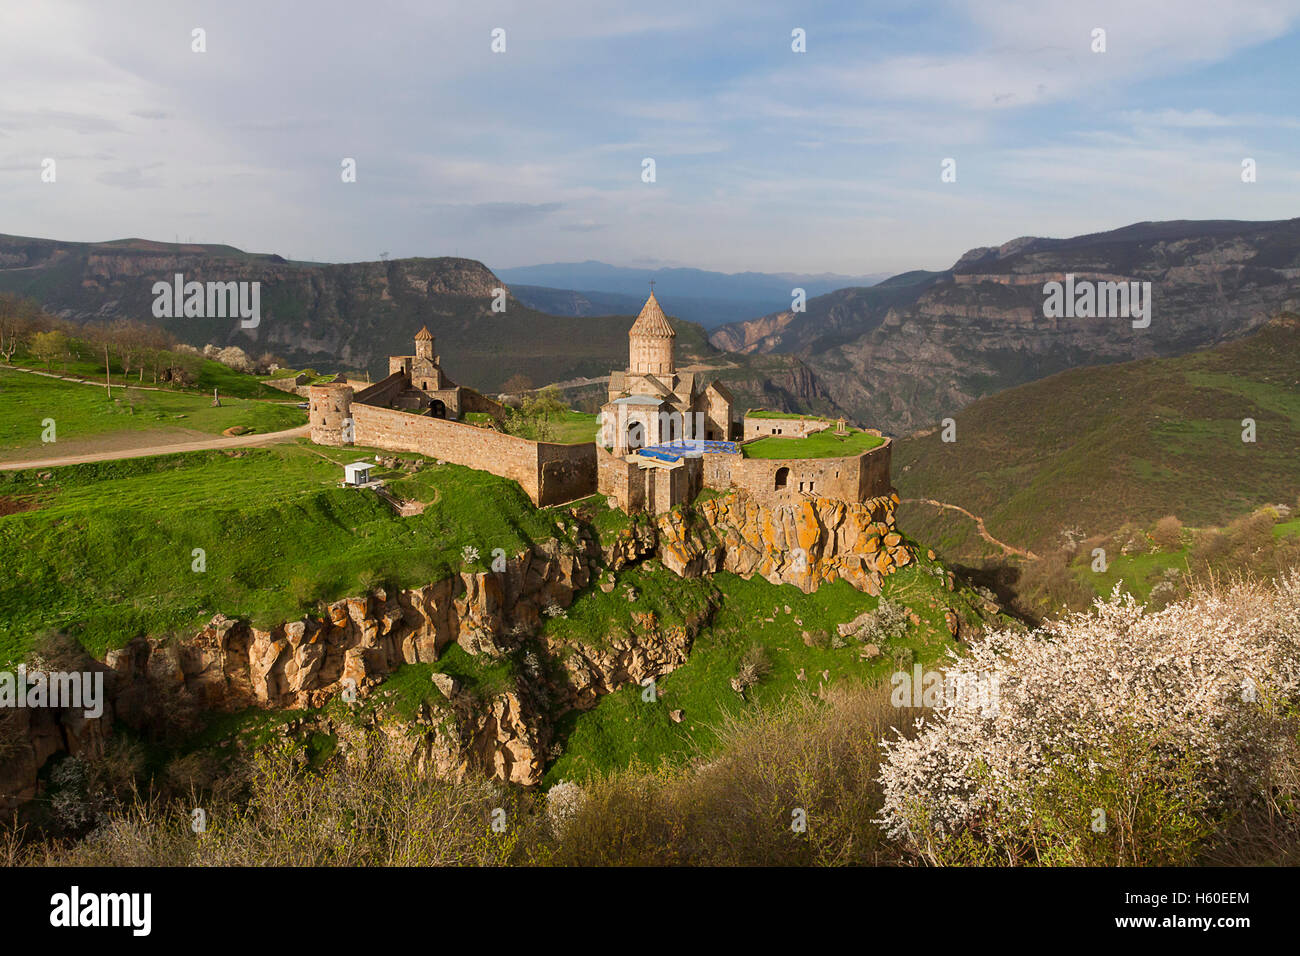 Tatev Monastery in Armenia. - Stock Image